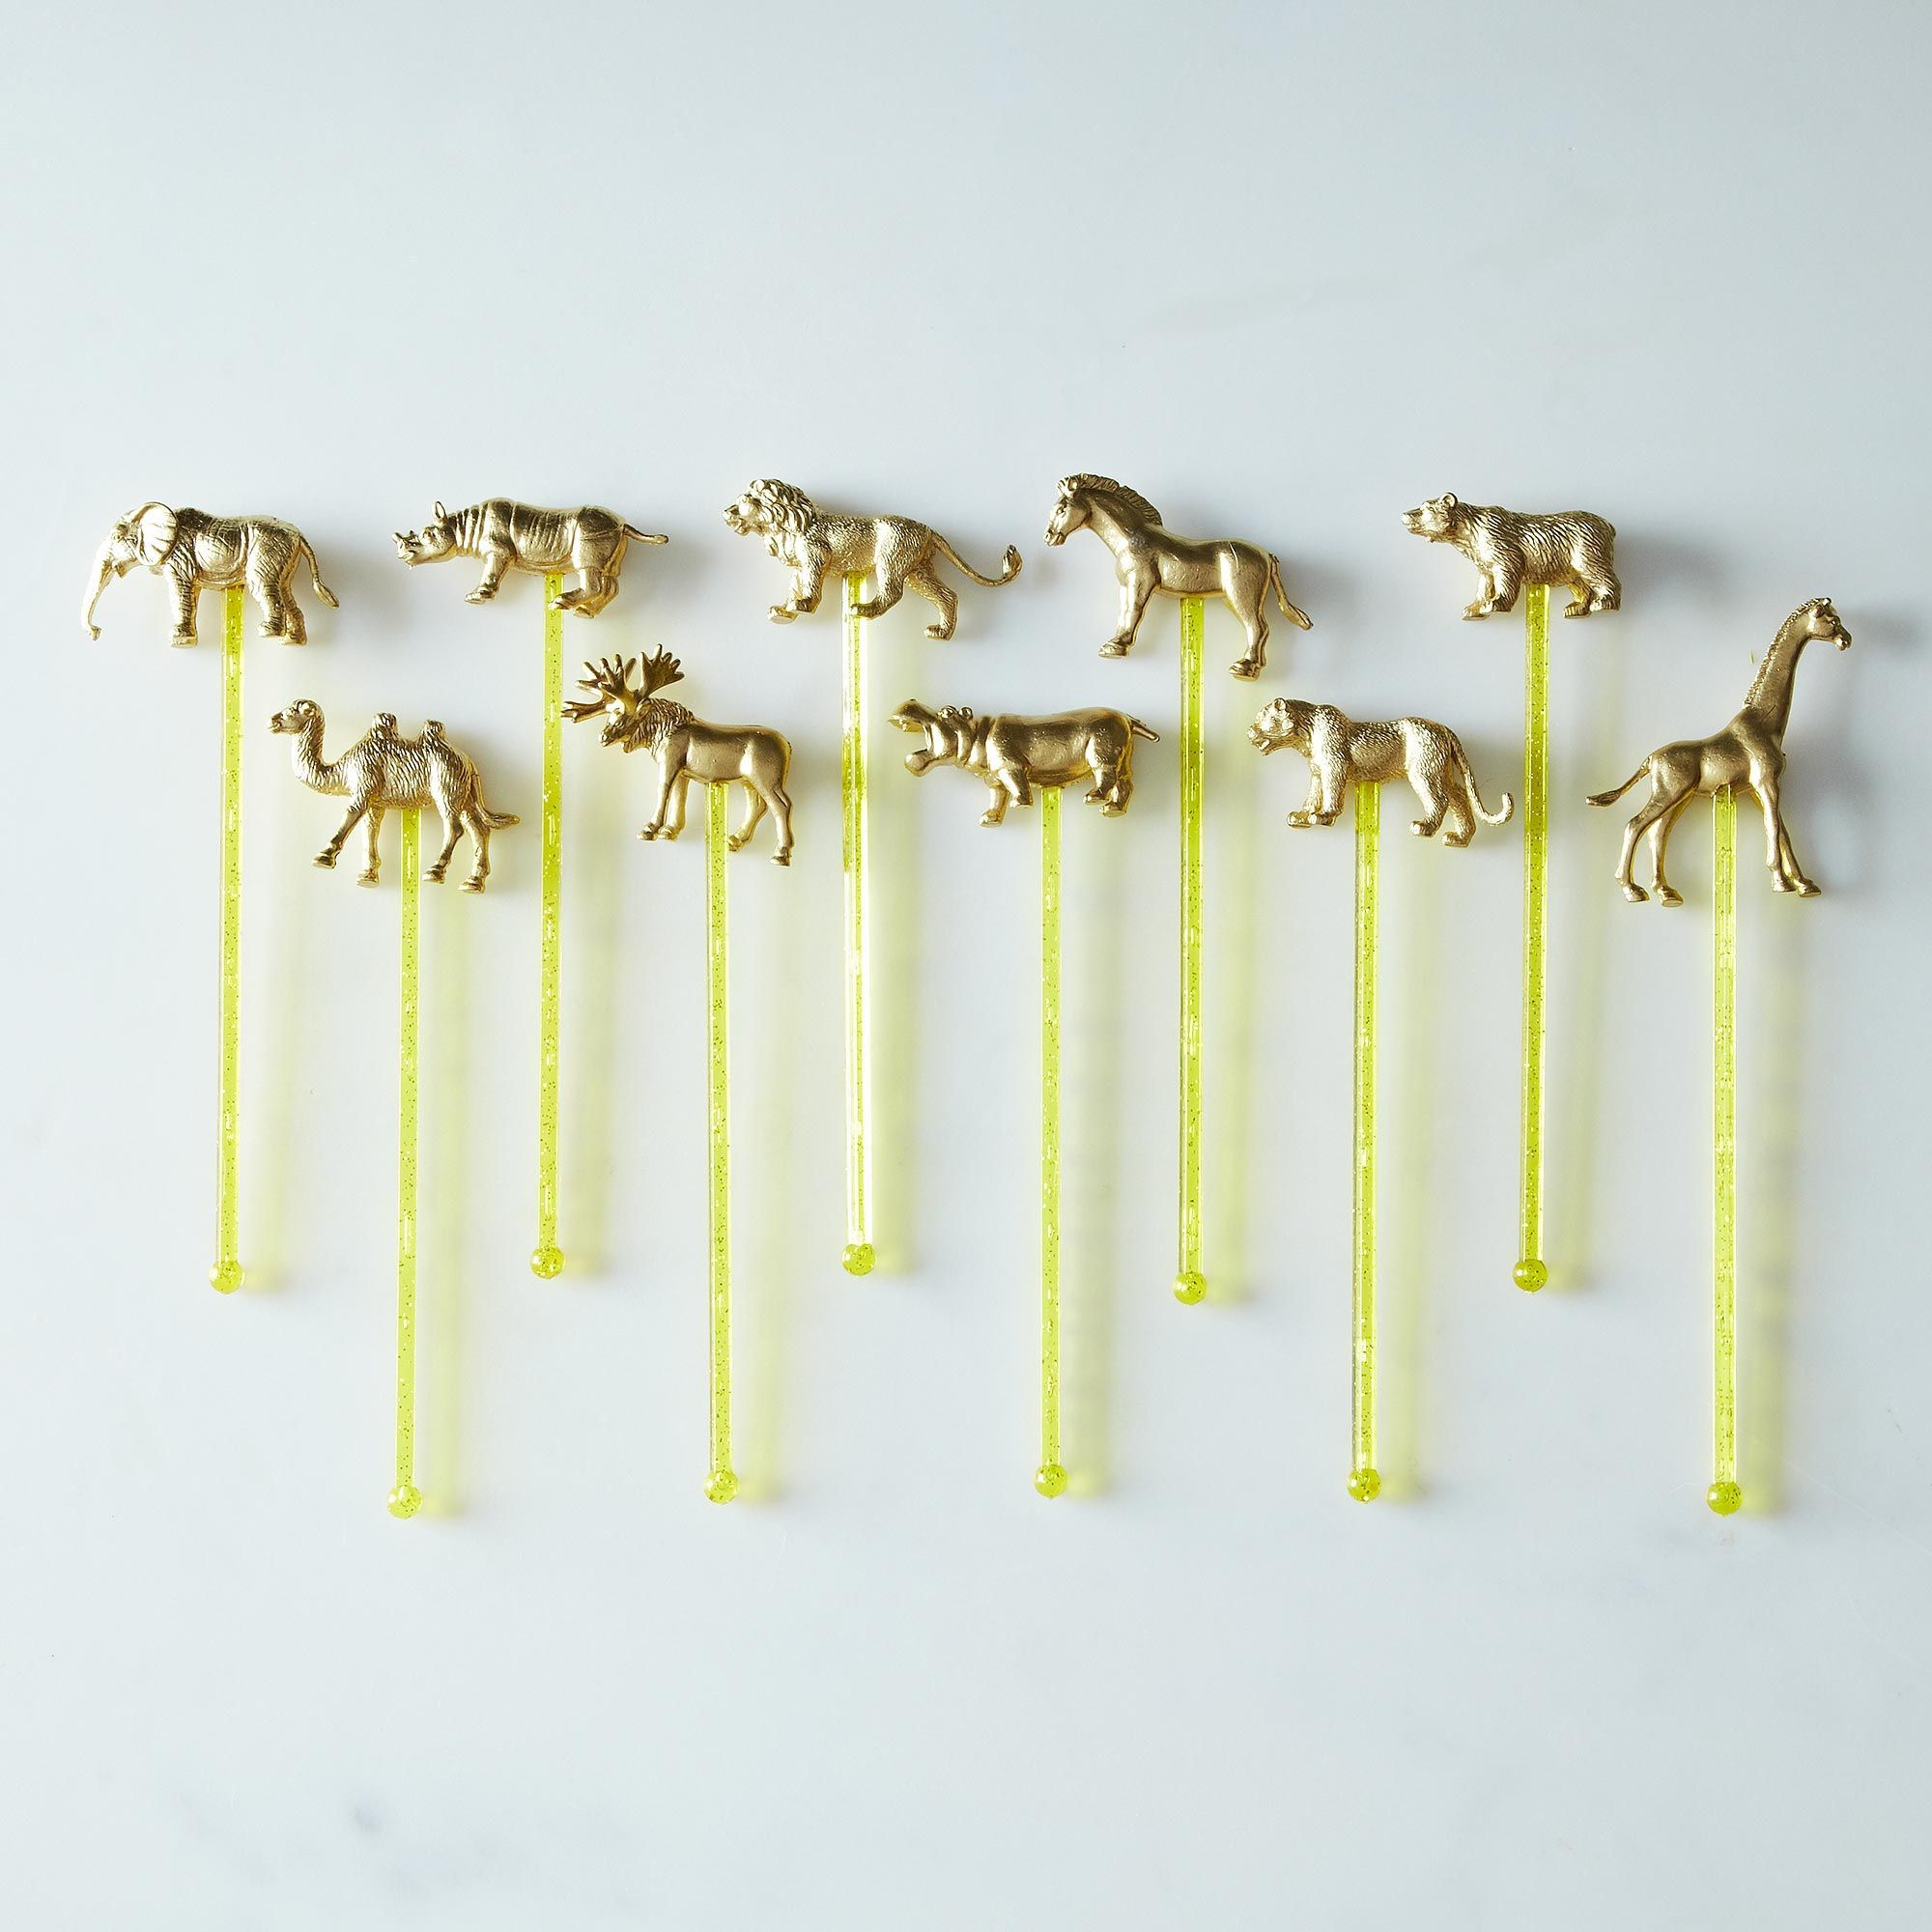 100fb750 a0f6 11e5 a190 0ef7535729df  2014 0311 animal drink stirrers 004